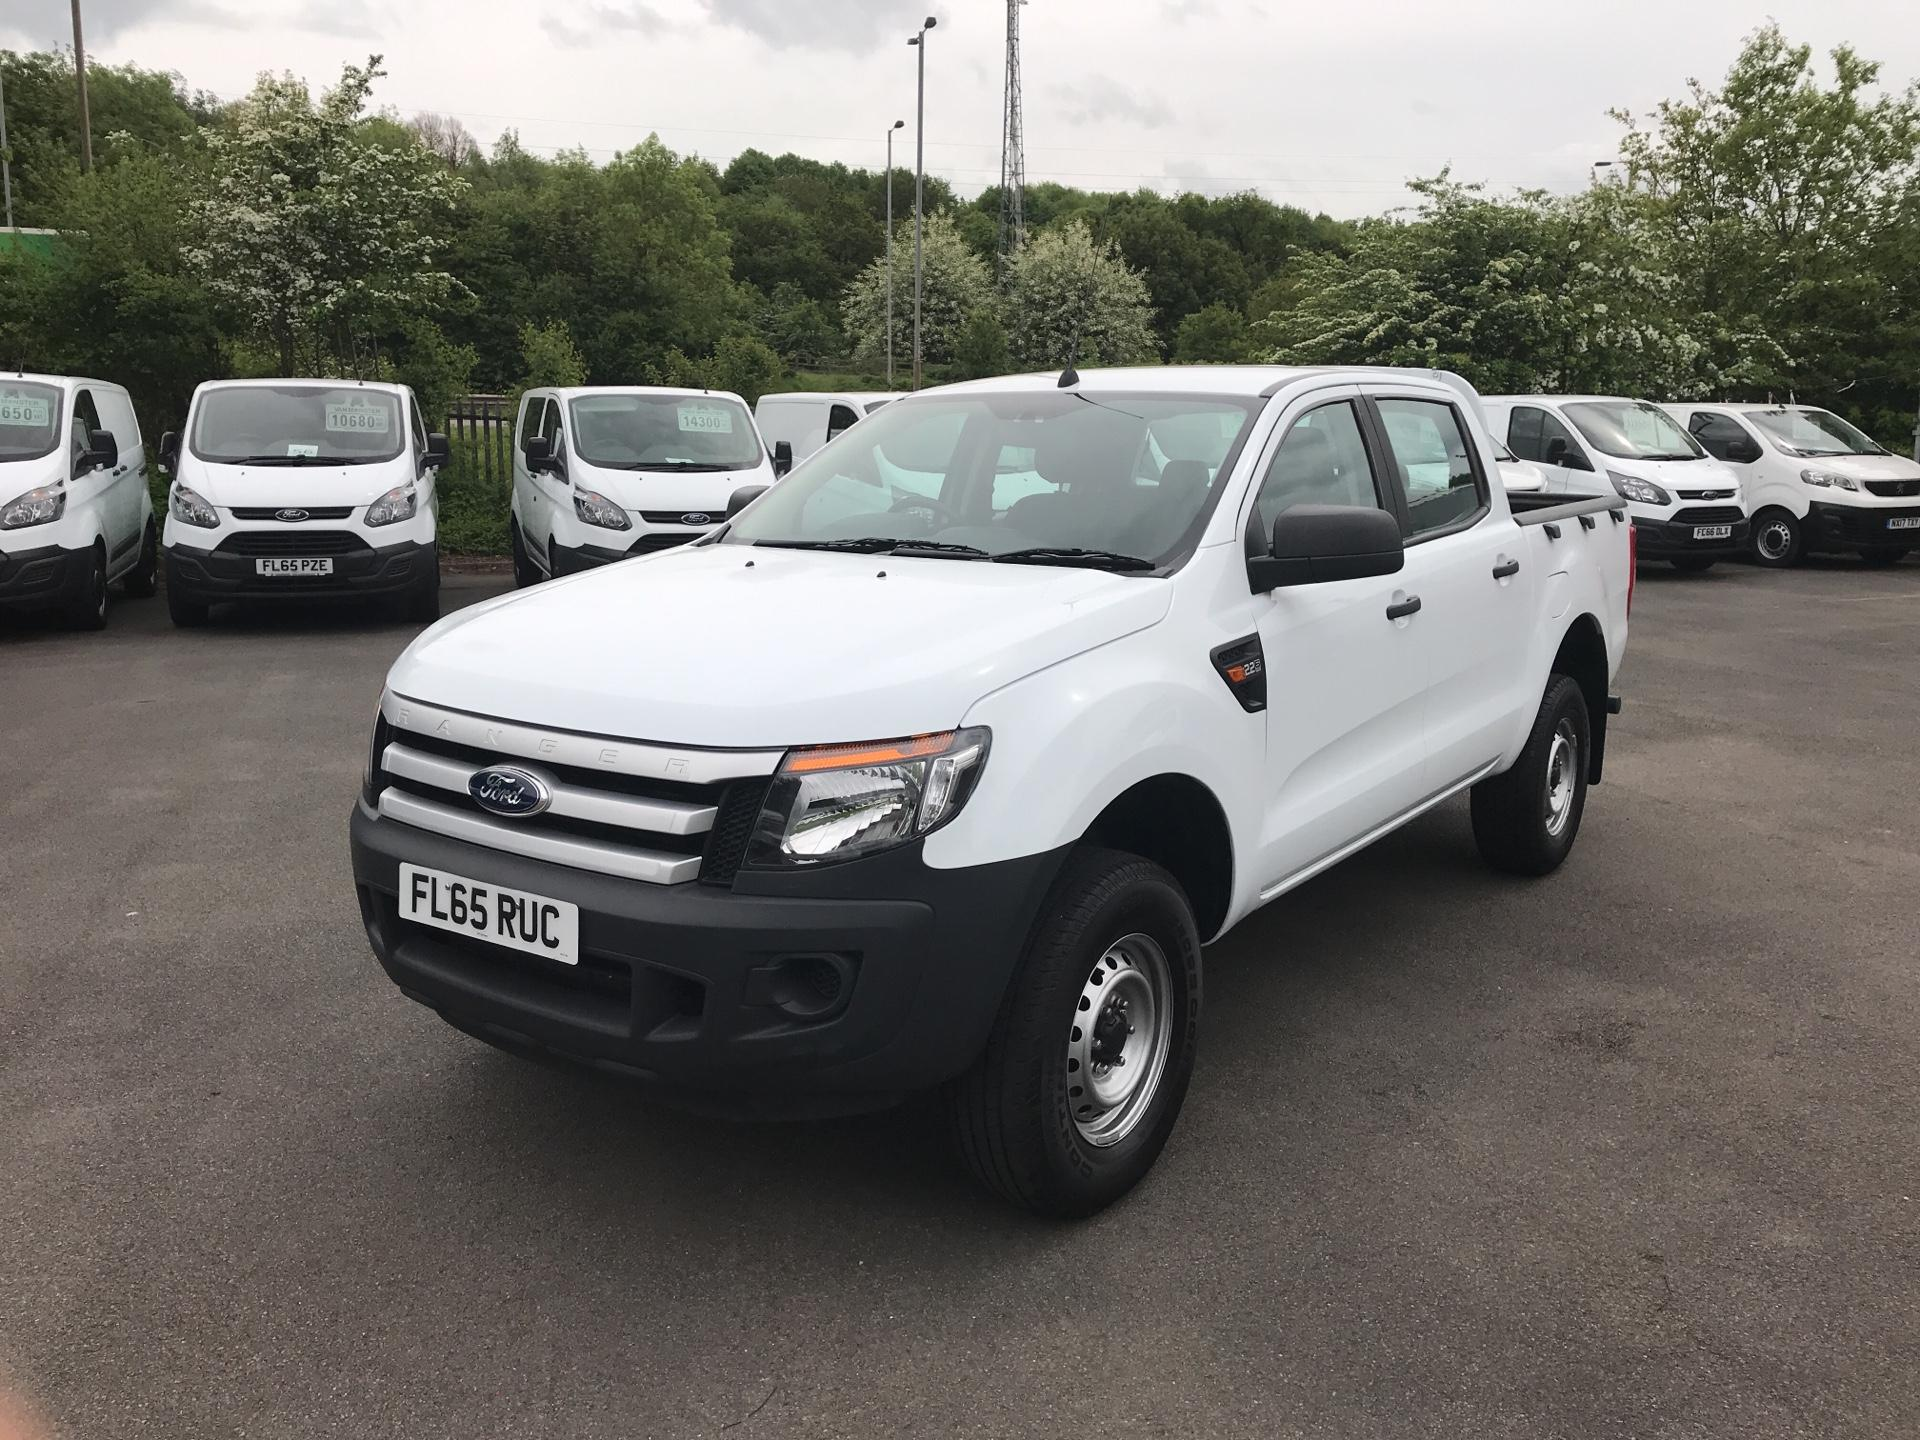 2015 Ford Ranger Pick Up Double Cab Xl 2.2 Tdci 150 4Wd (FL65RUC) Image 7